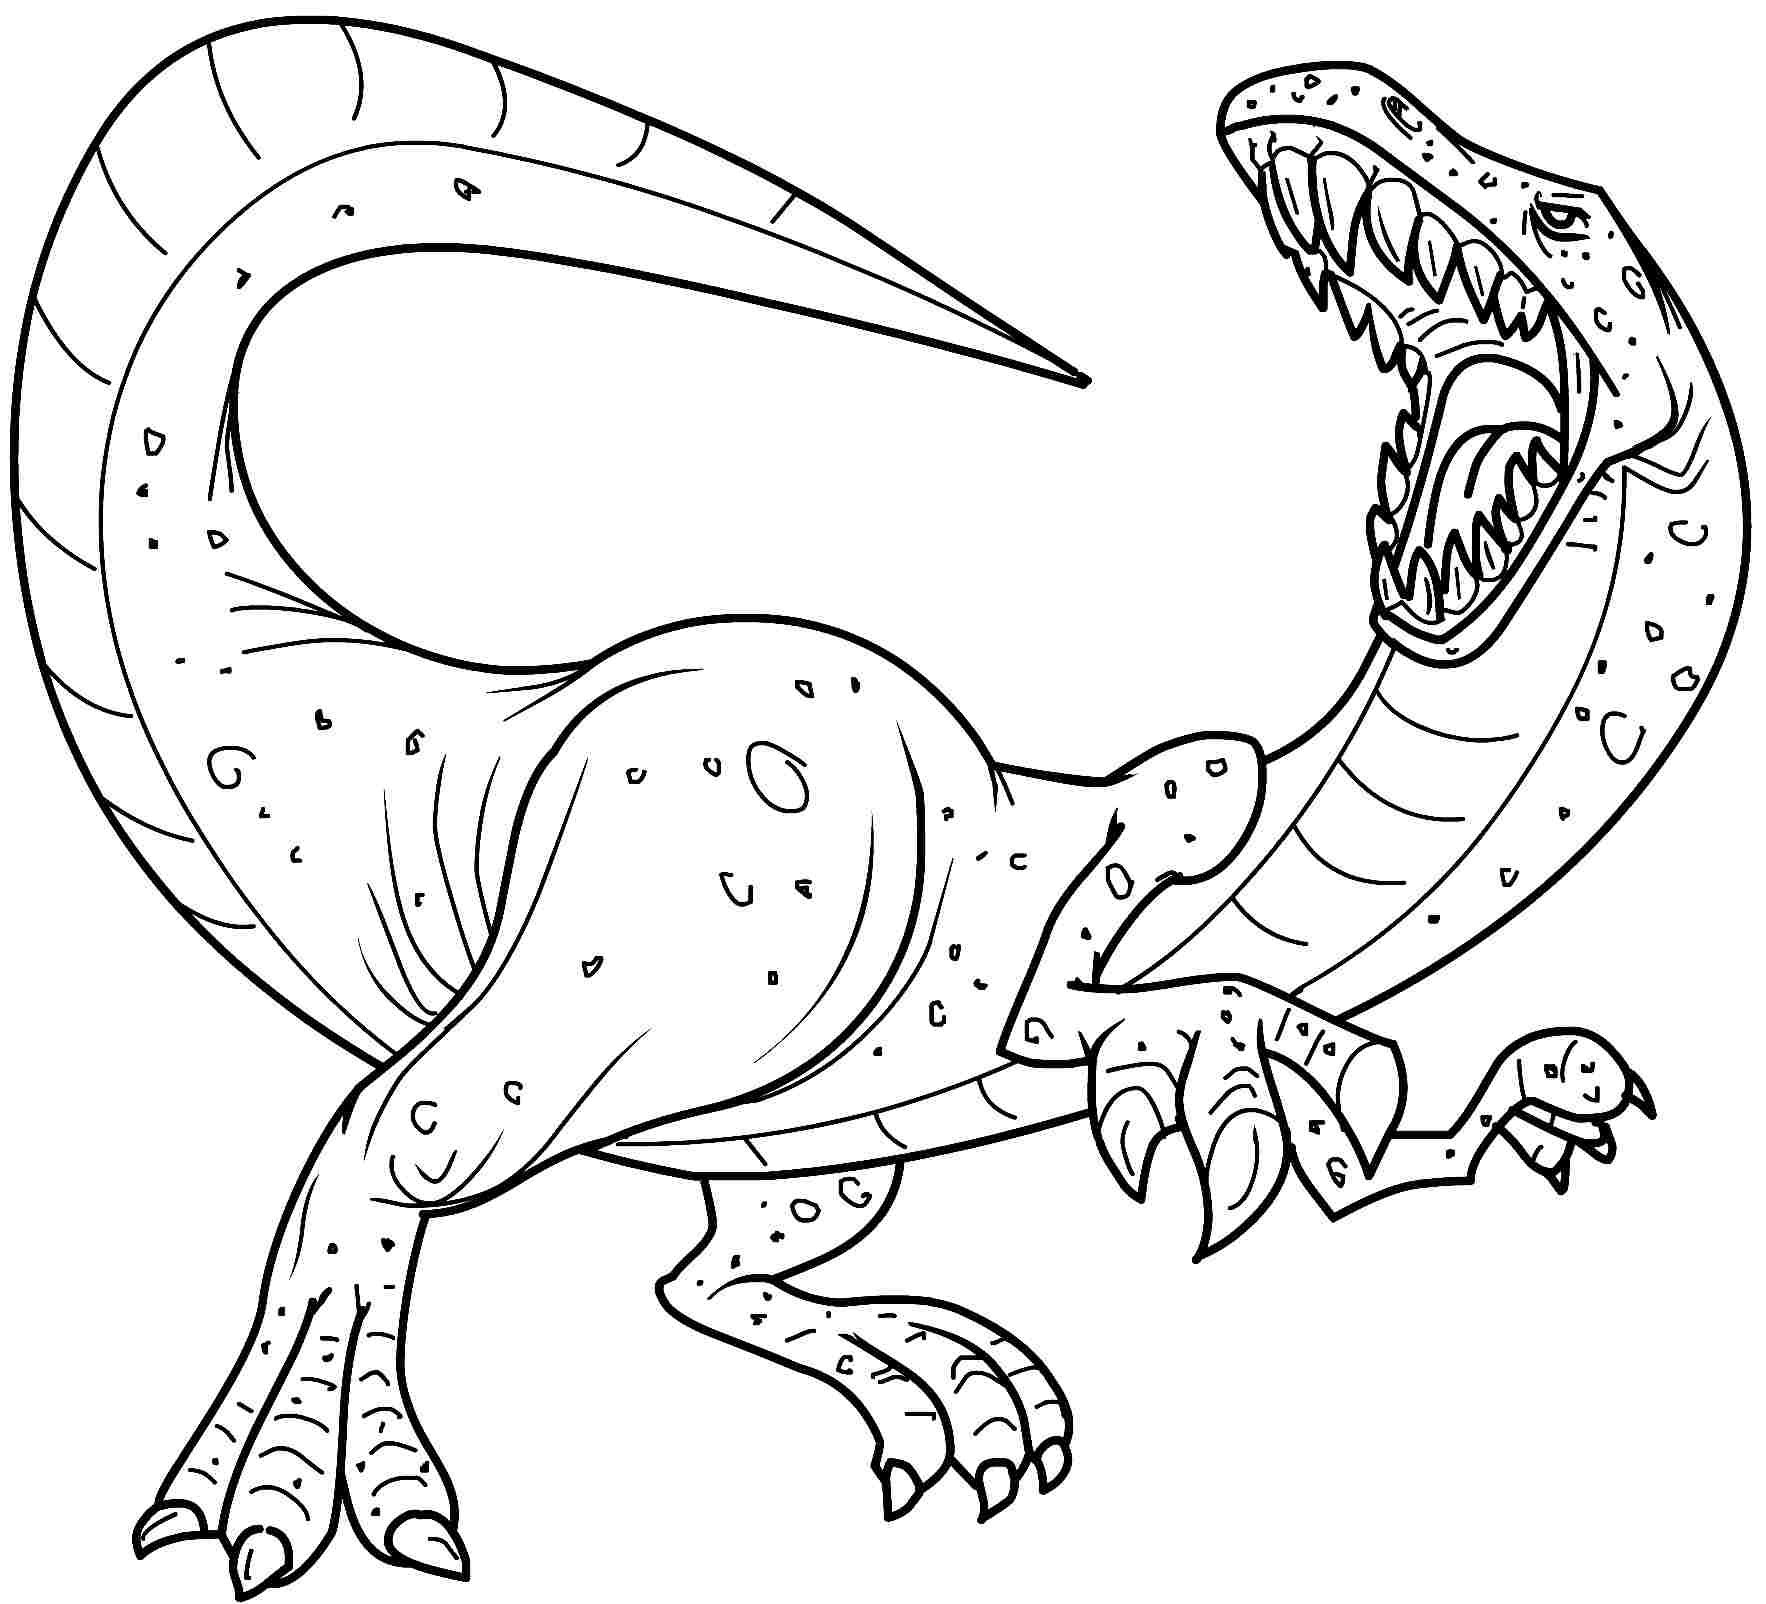 Allosaurus Dinosaur Coloring Pages Dinosaur Coloring Pages Creation Coloring Pages Animal Coloring Pages